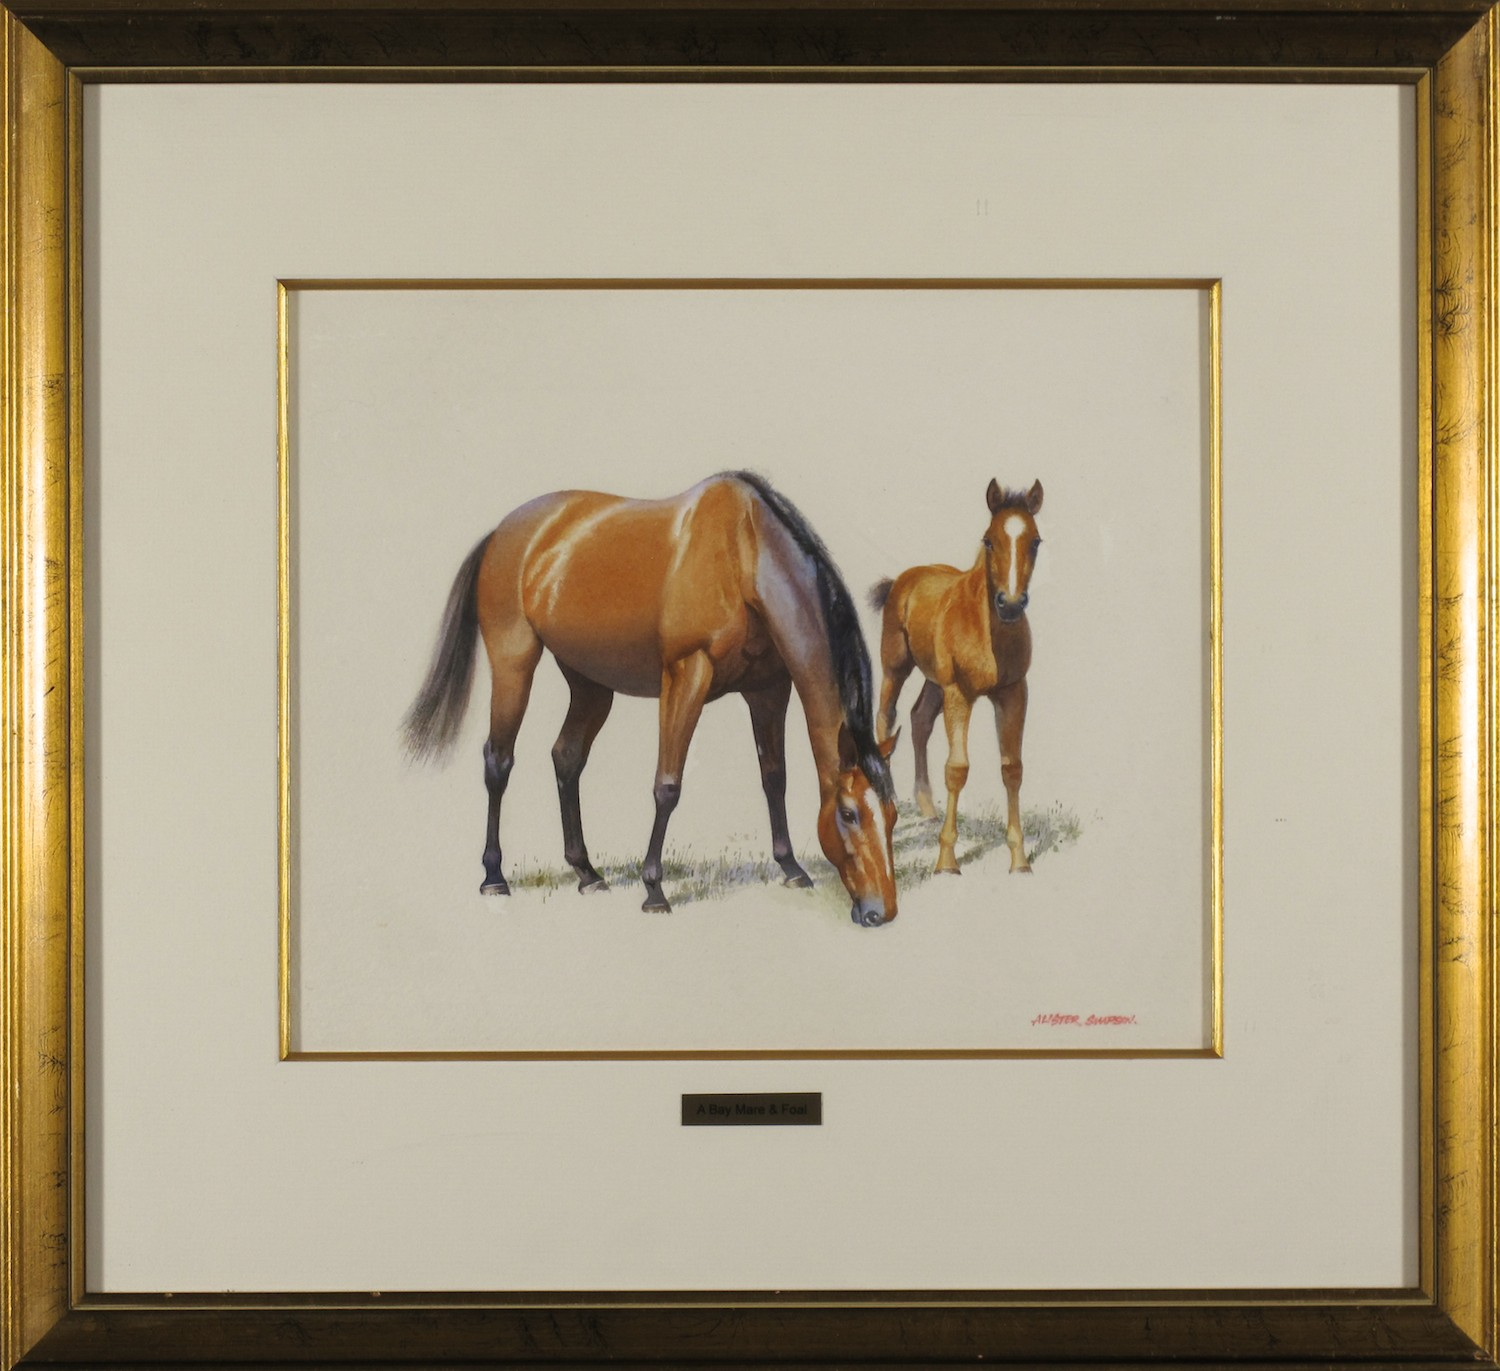 #10733 Alister Simpson. A Bay Mare and Foal. 48cm x 52cm.